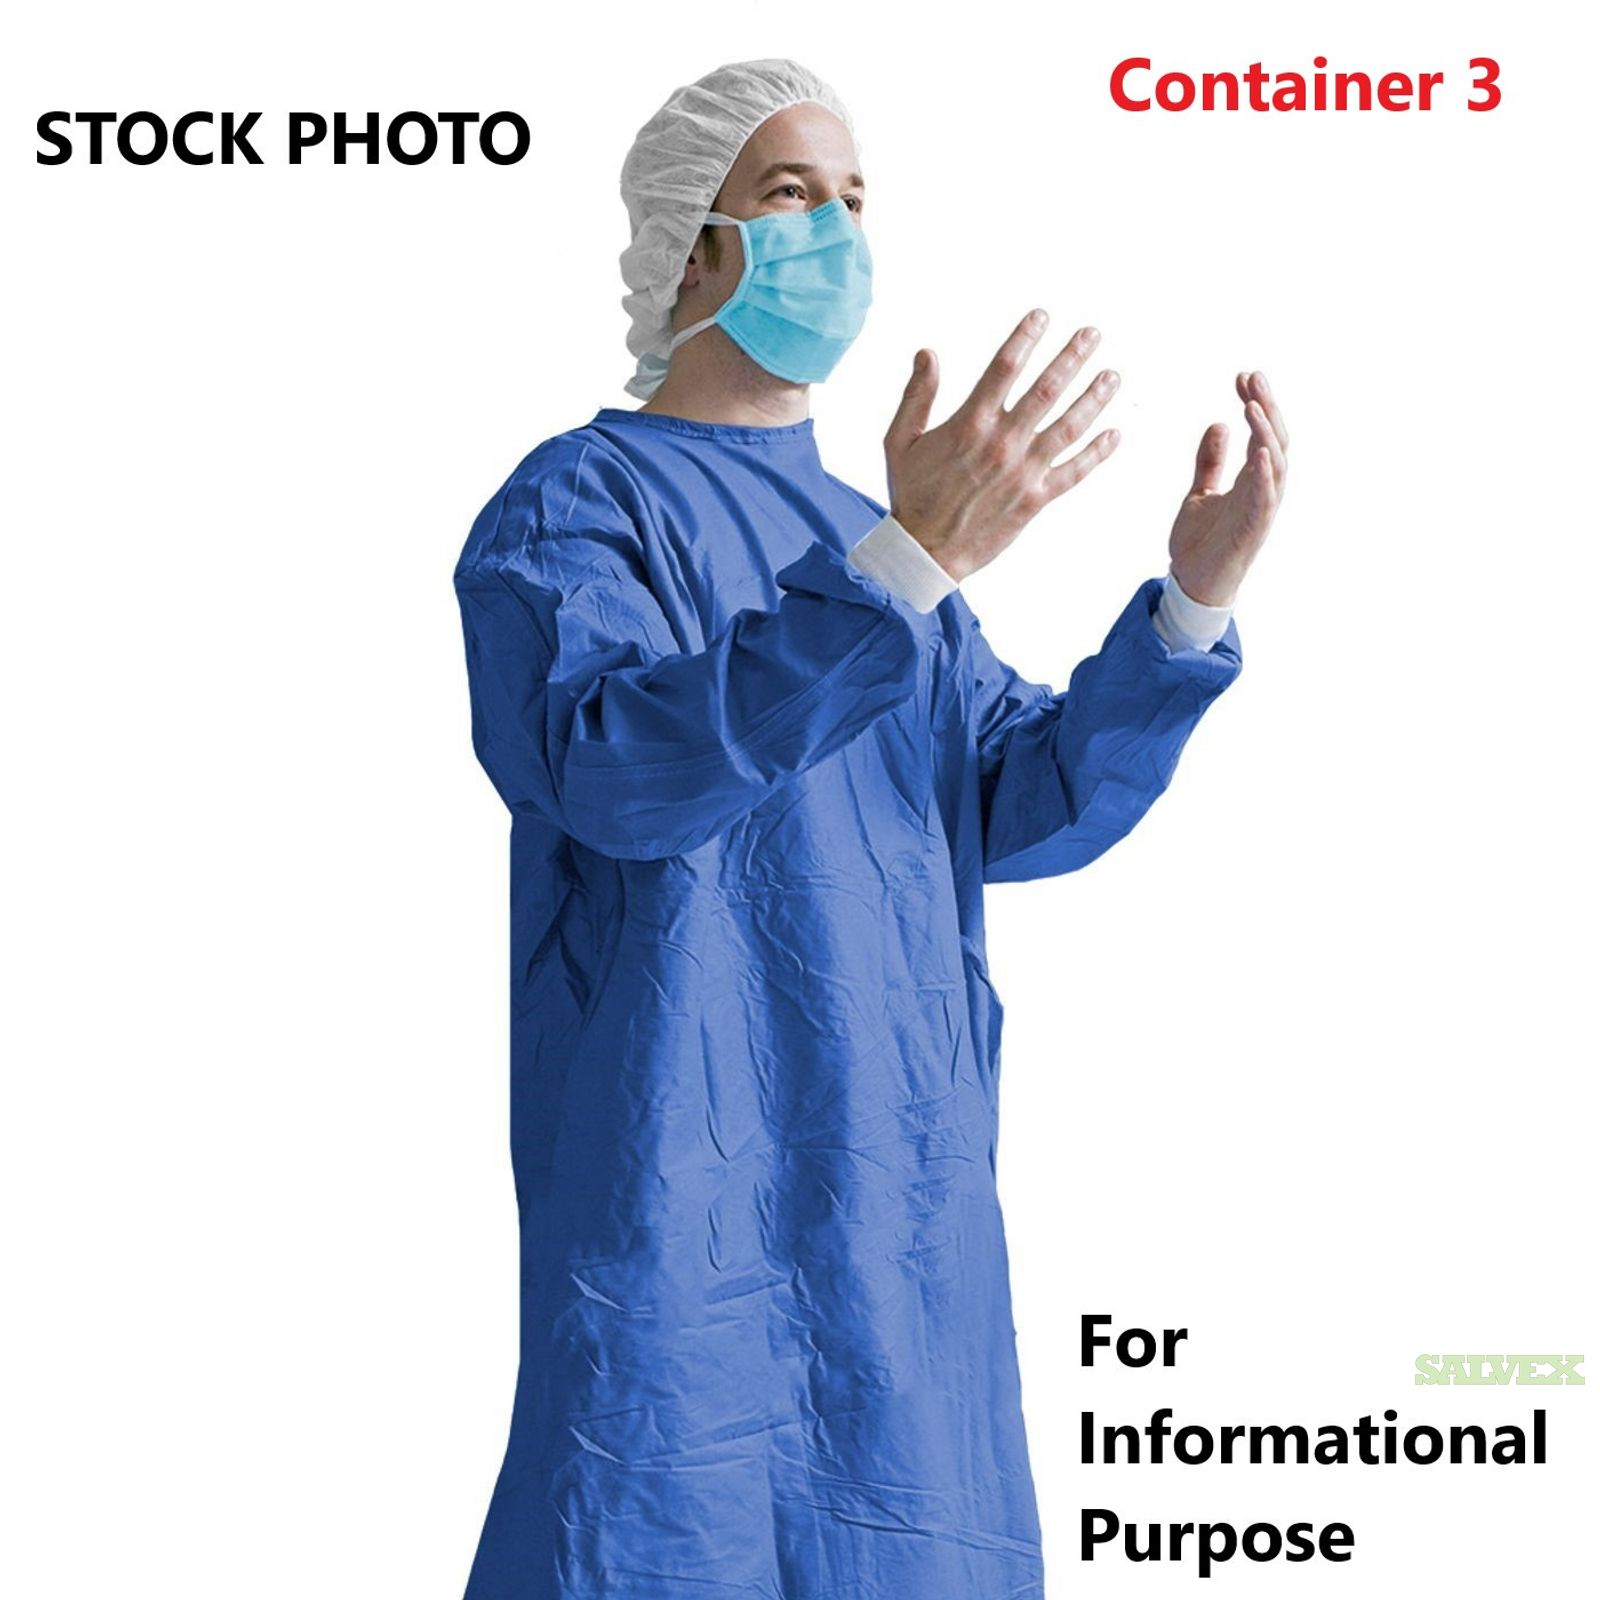 Disposable Hospital Isolation Gowns Level 2 - Container 3 of 5